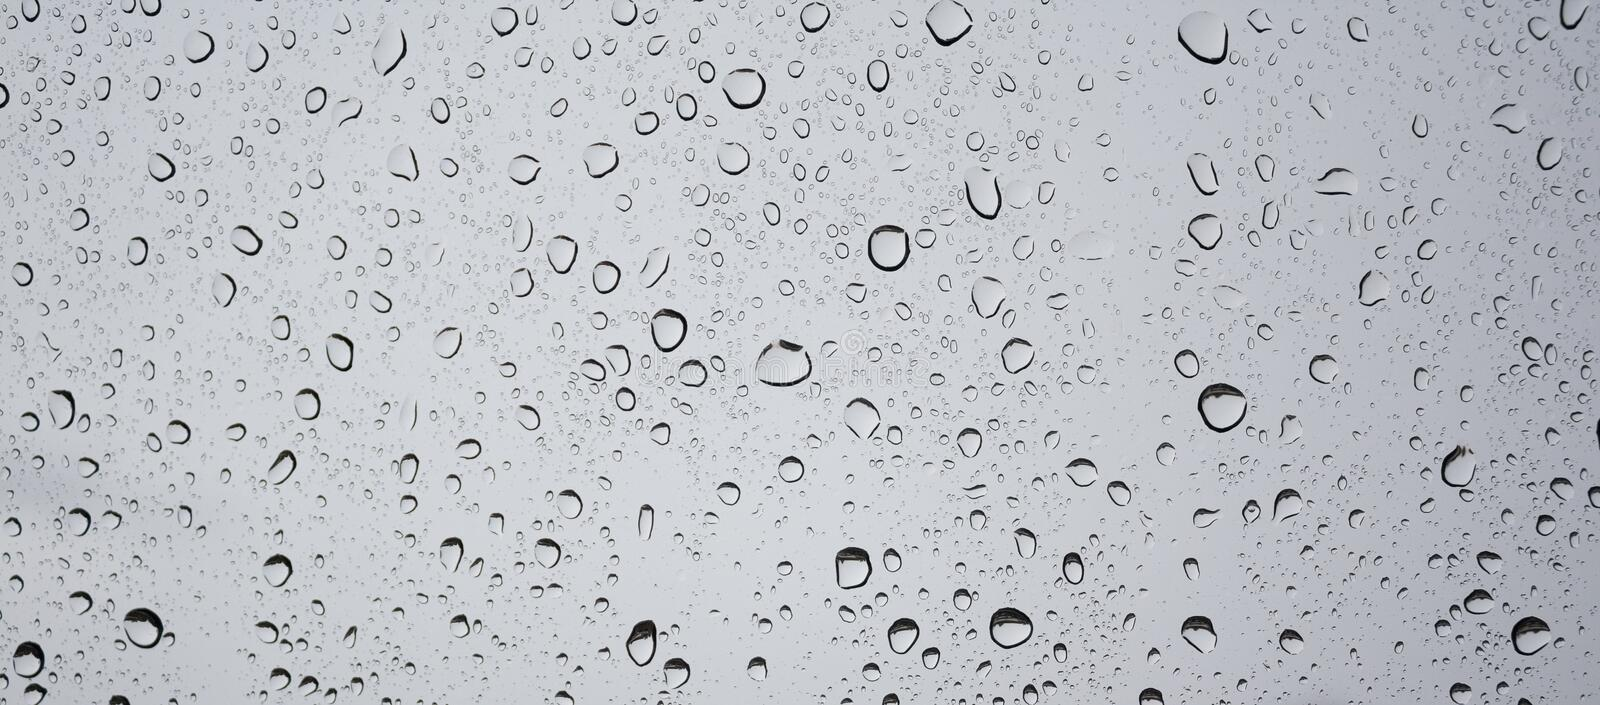 Download Water droplet background stock image. Image of drops - 84956909